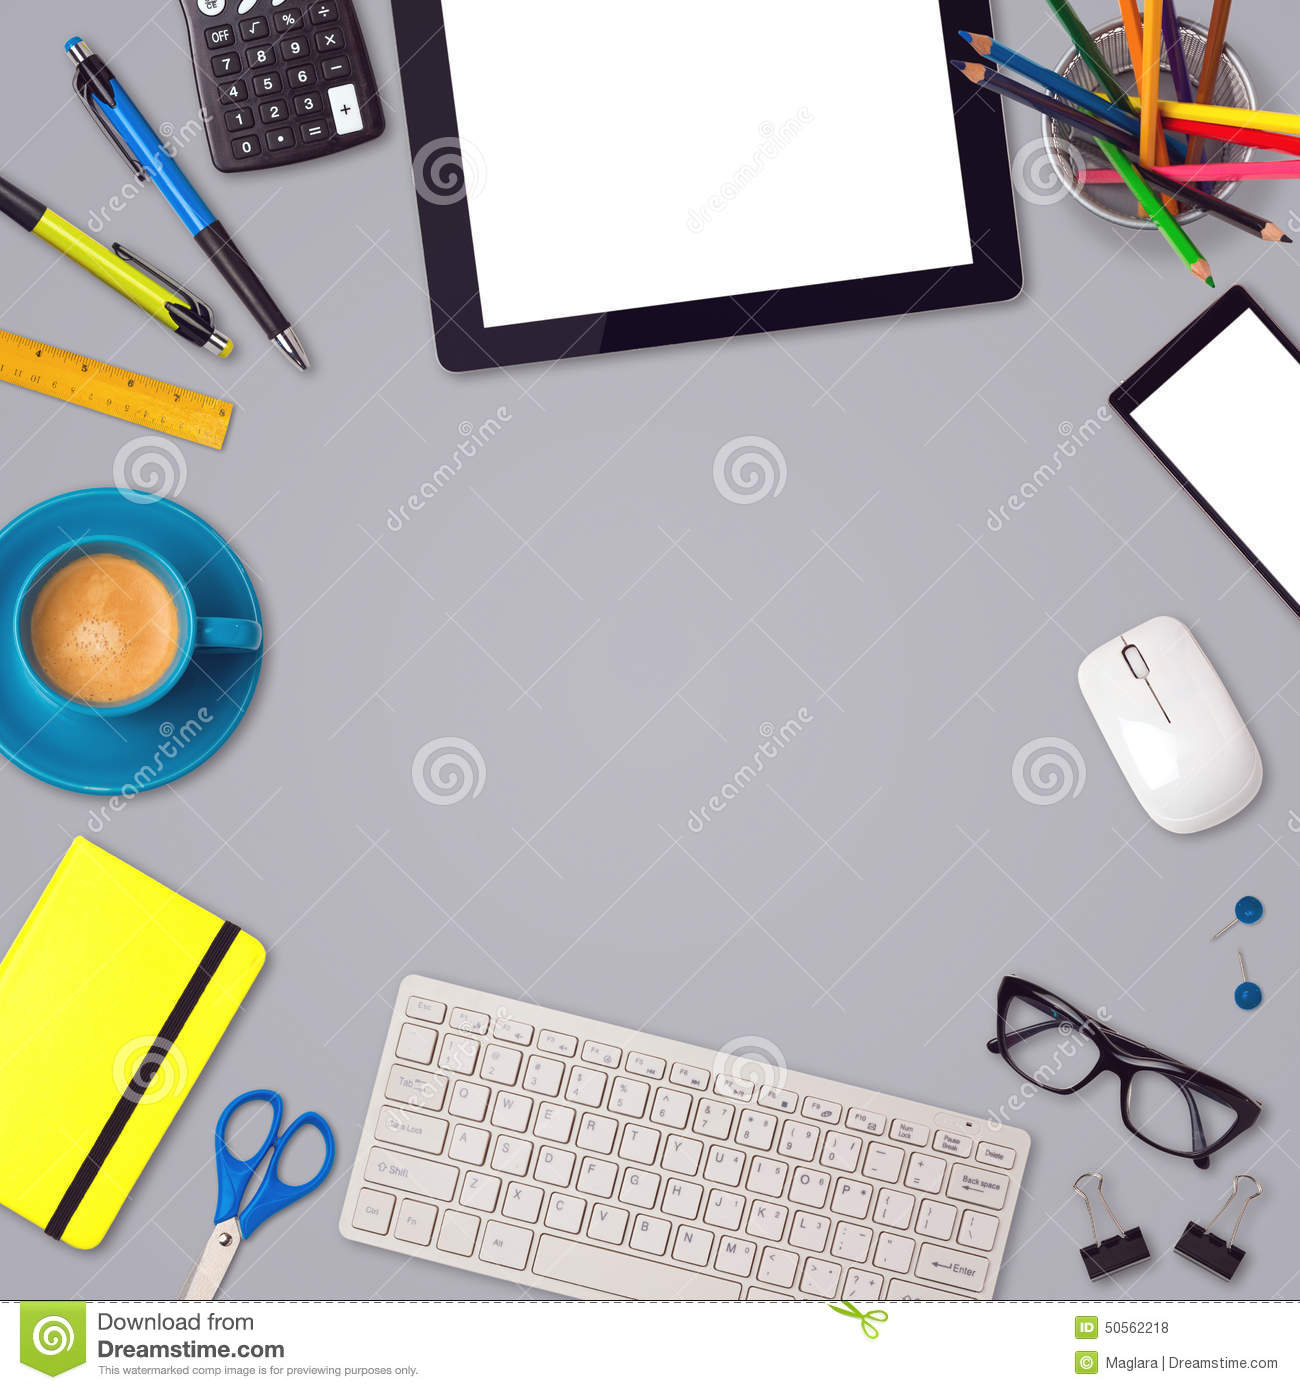 office desk mock up template background tablet smartphone office desk mock up template background tablet smartphone and office items